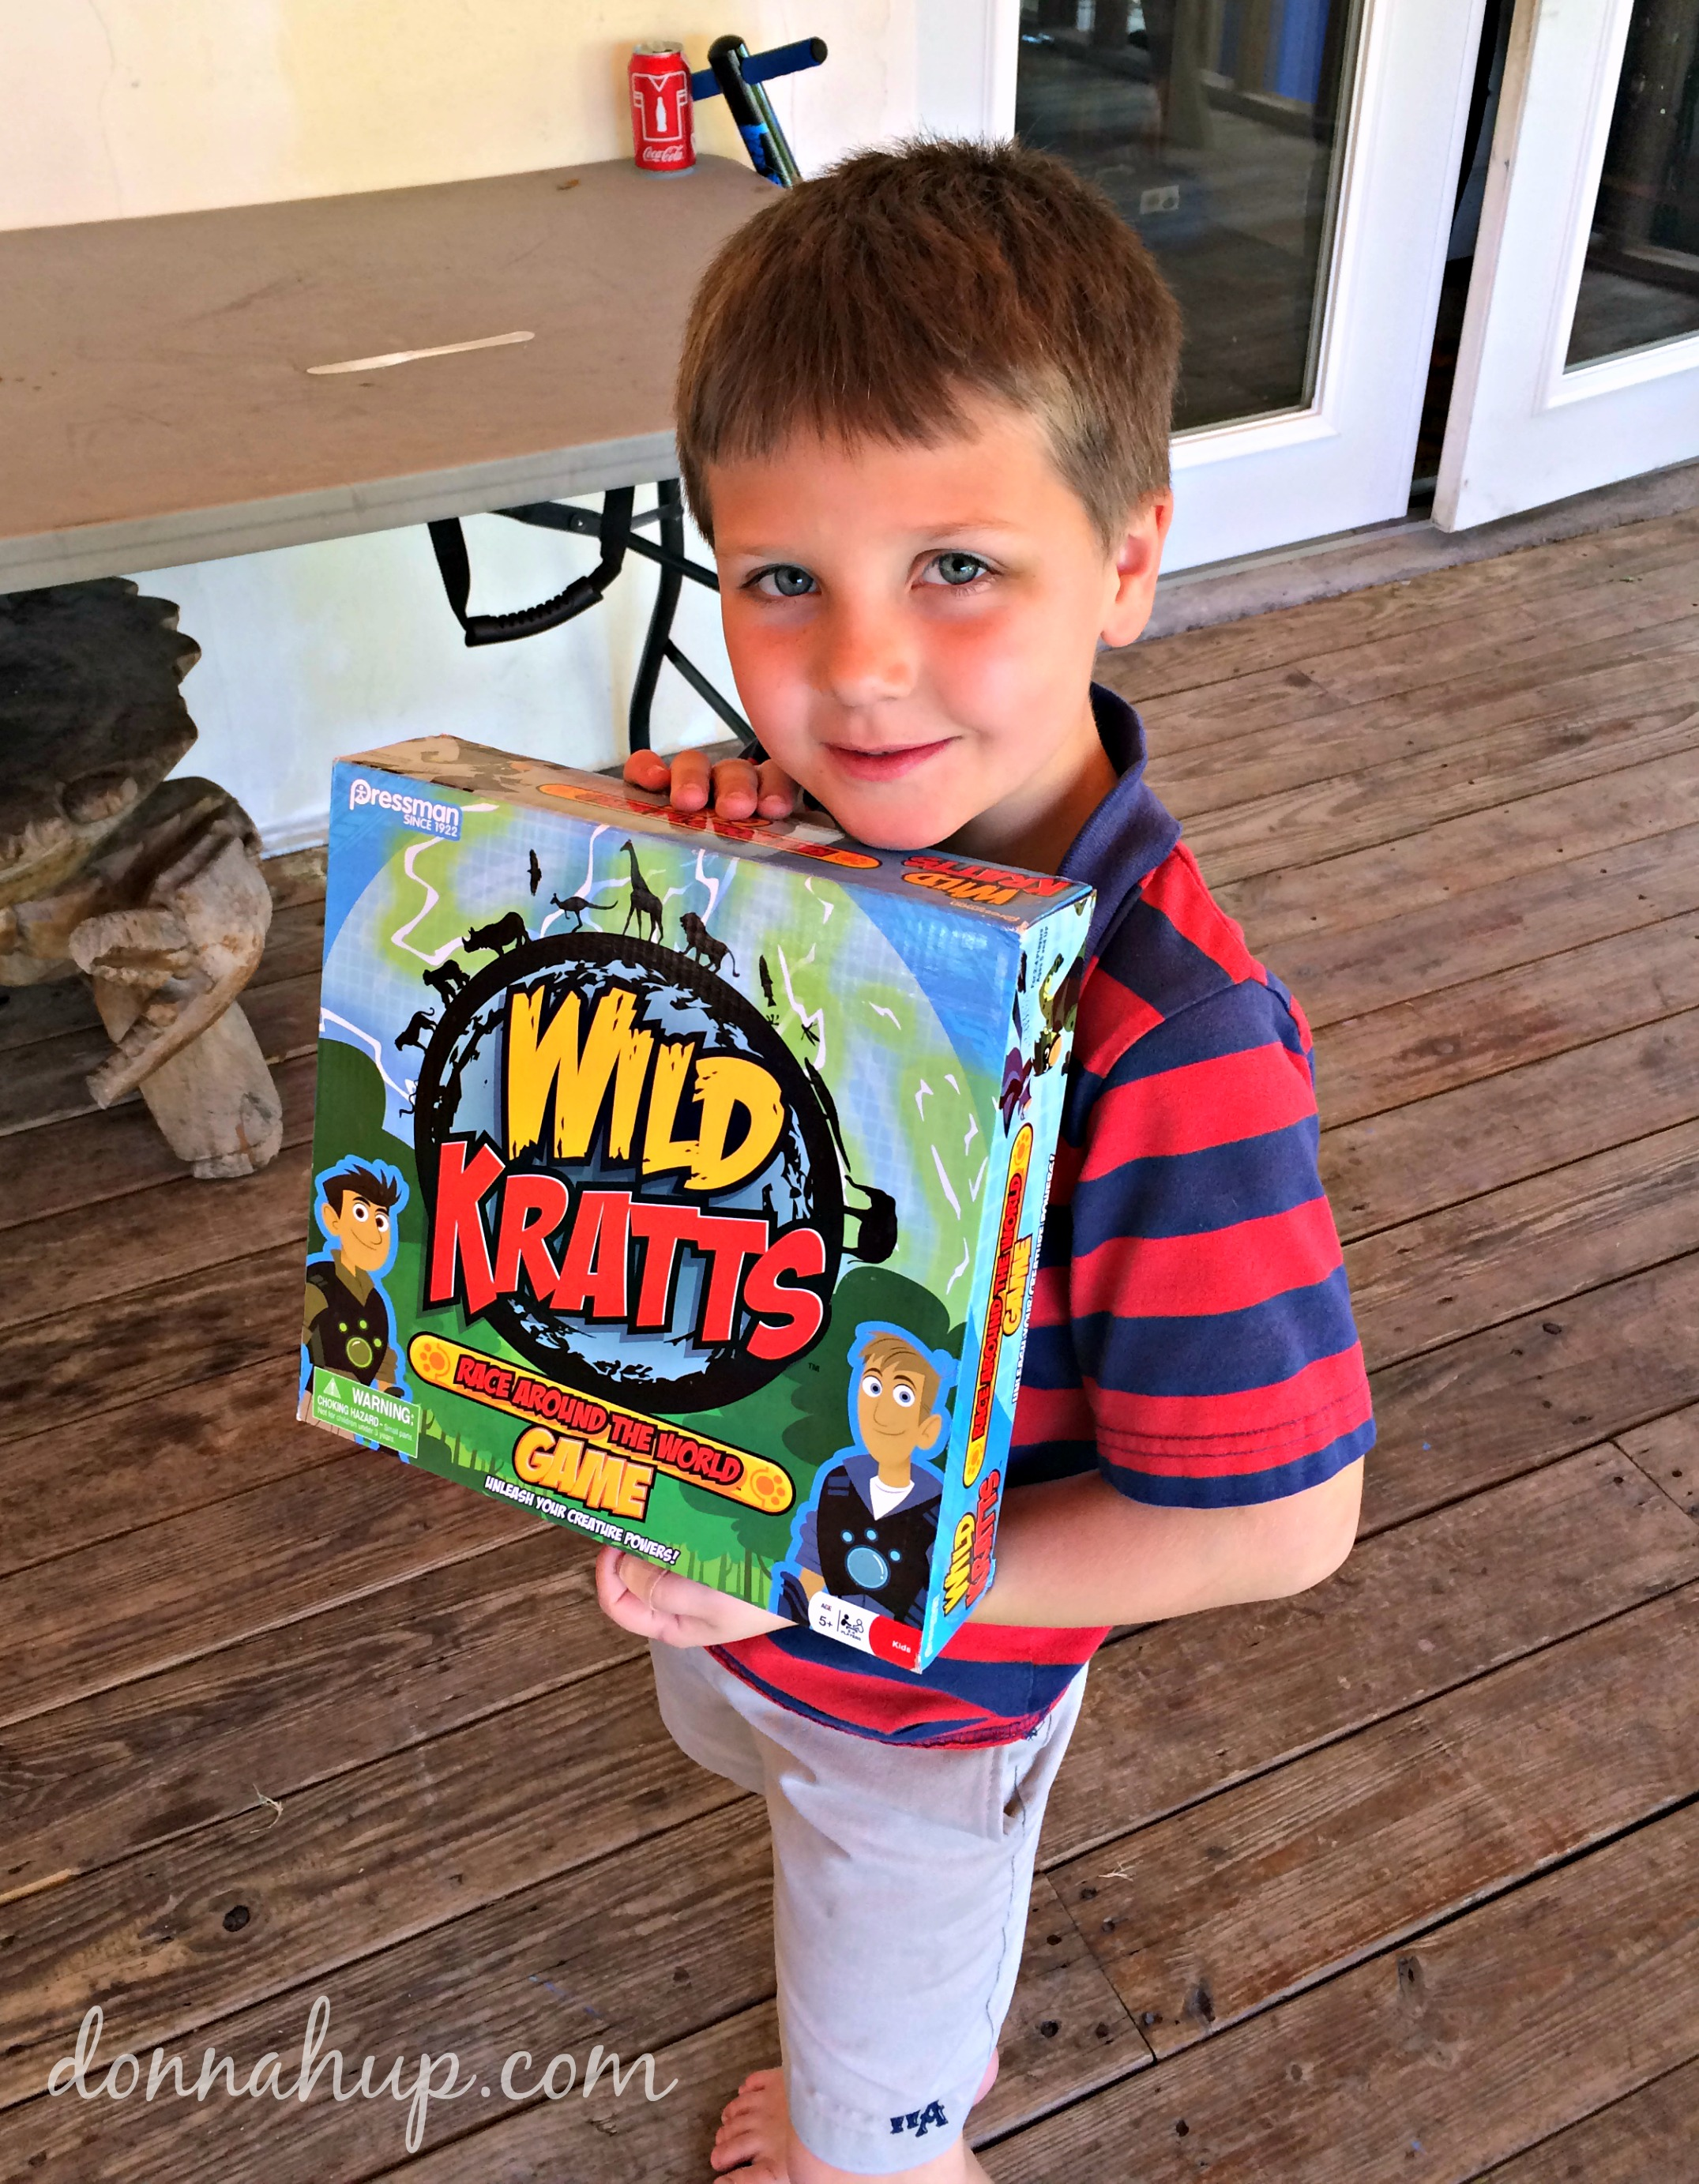 Racing around the World with the Wild Kratts